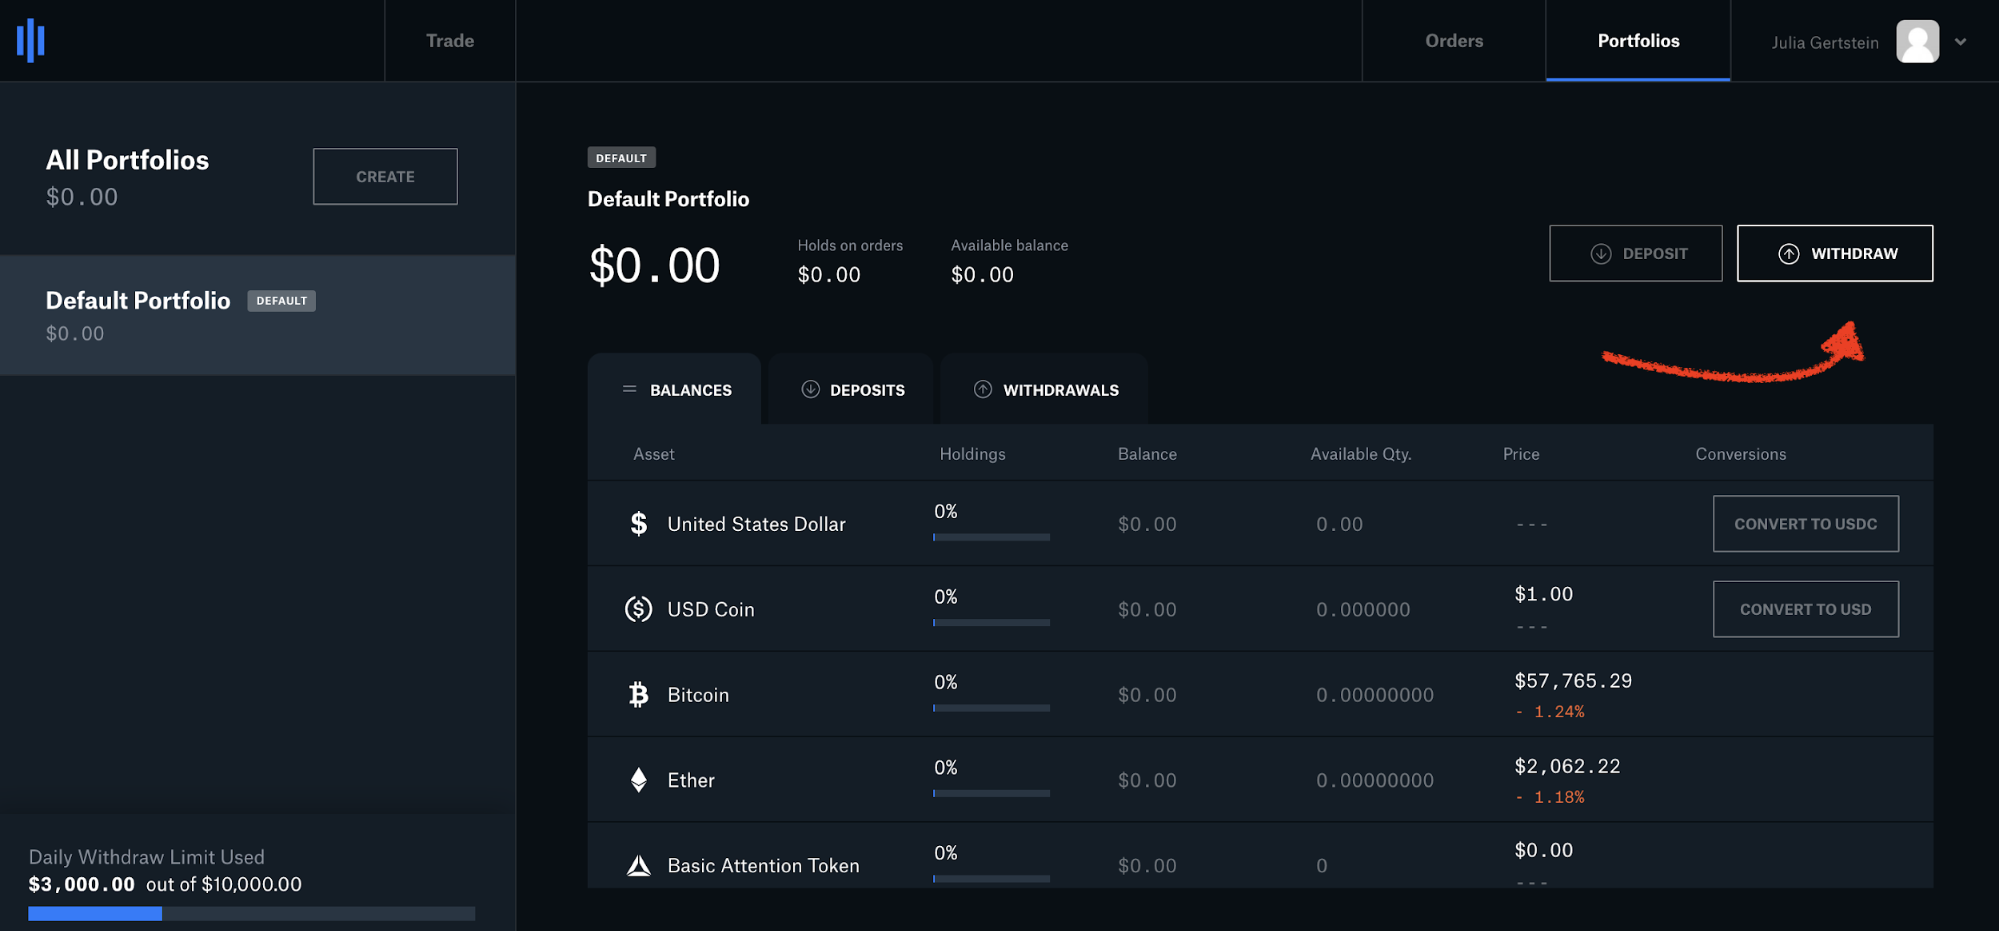 How to transfer from Coinbase Pro to Kraken